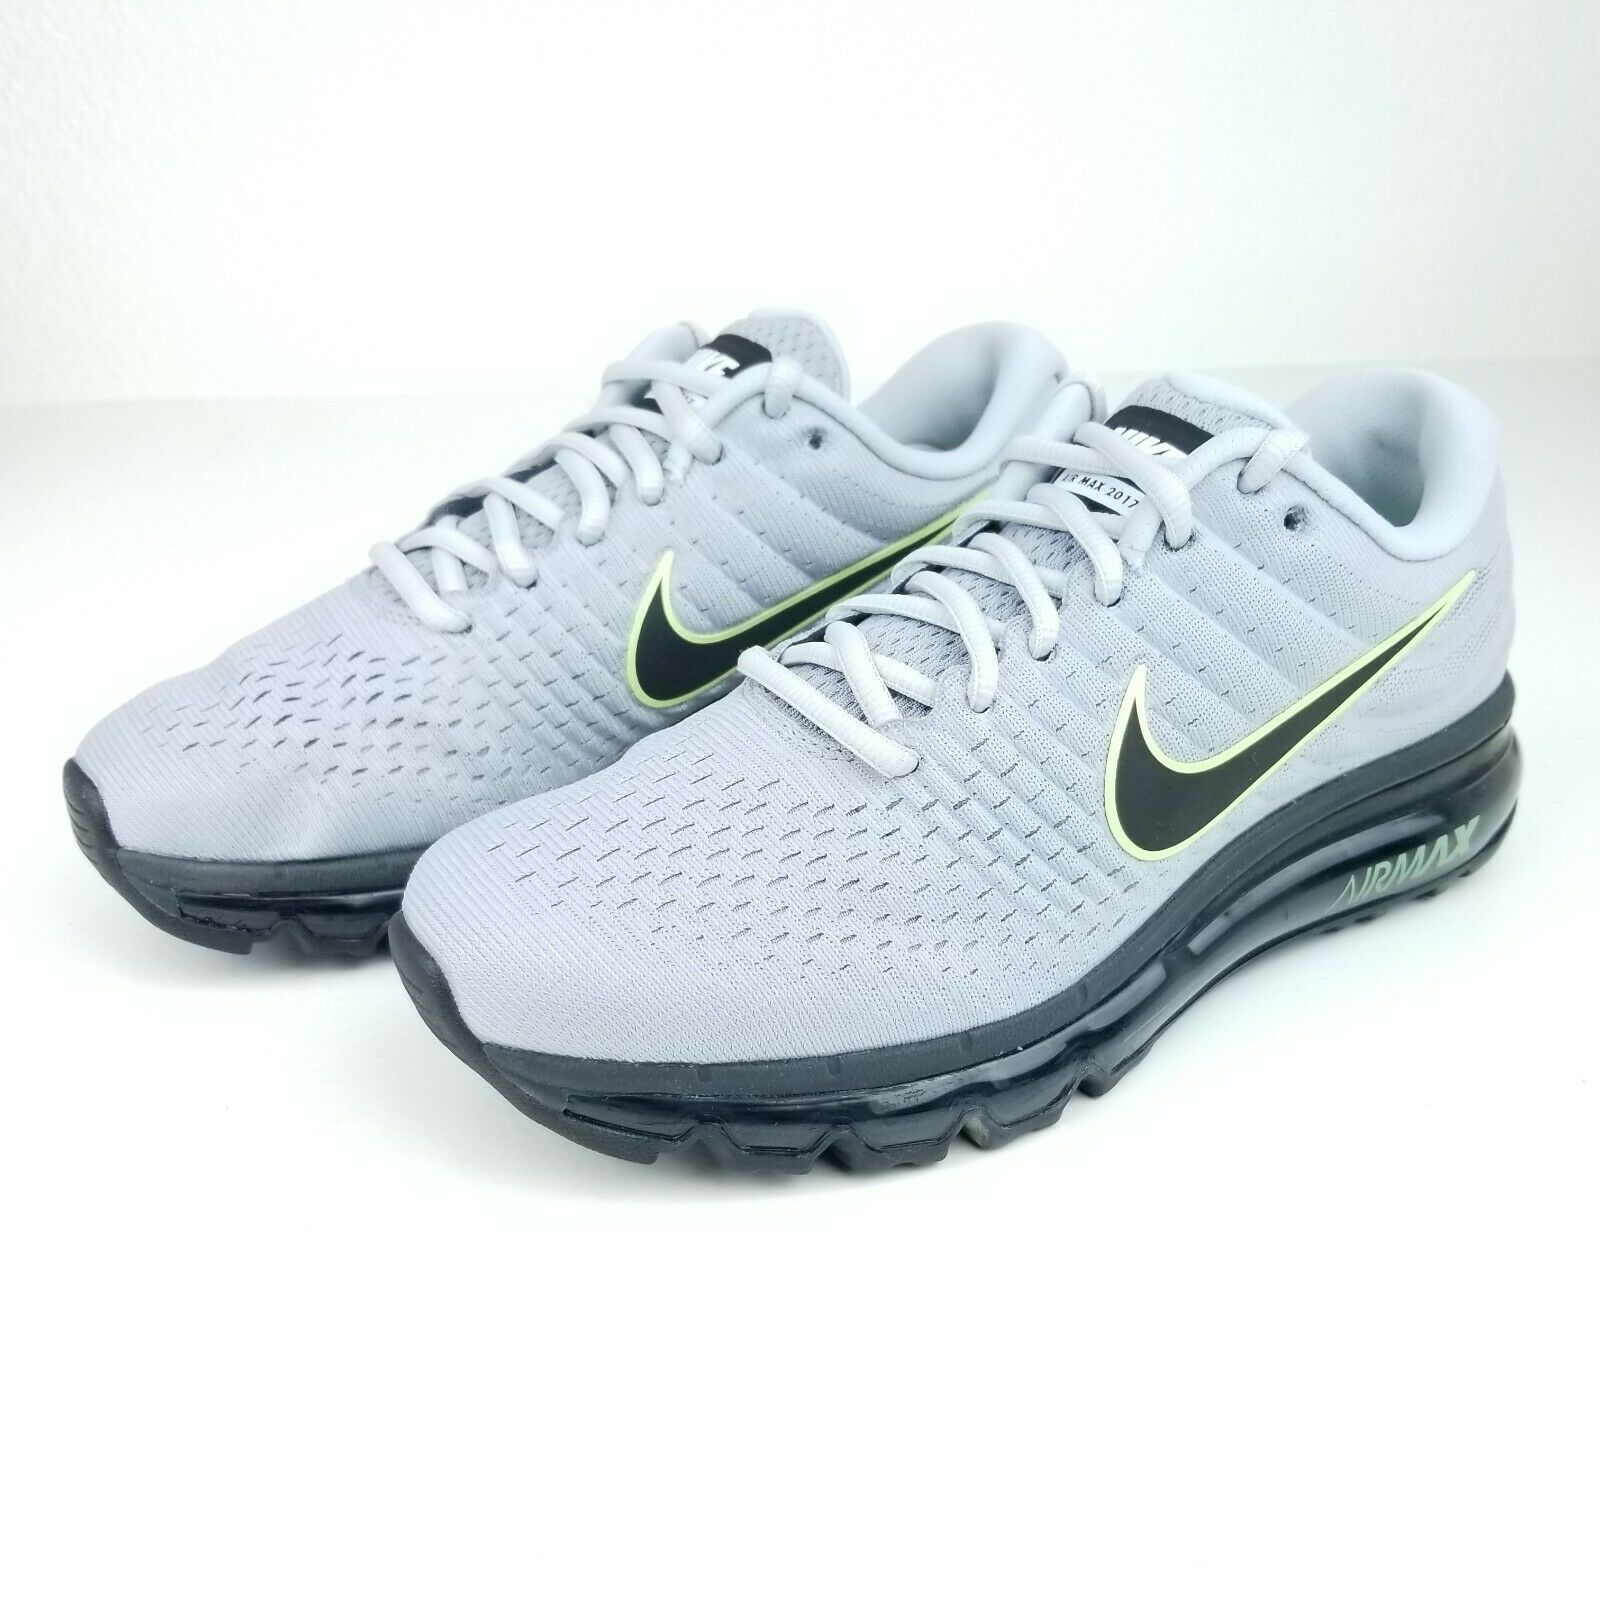 Periódico etiqueta Puntero  Nike Air Max 2017 Mens Running Shoes Gray Black 849559 012 Sizes 8-12 Click  the picture for more.. Ne… in 2020 | Nike air max, Running shoes grey, Most  comfortable sneakers